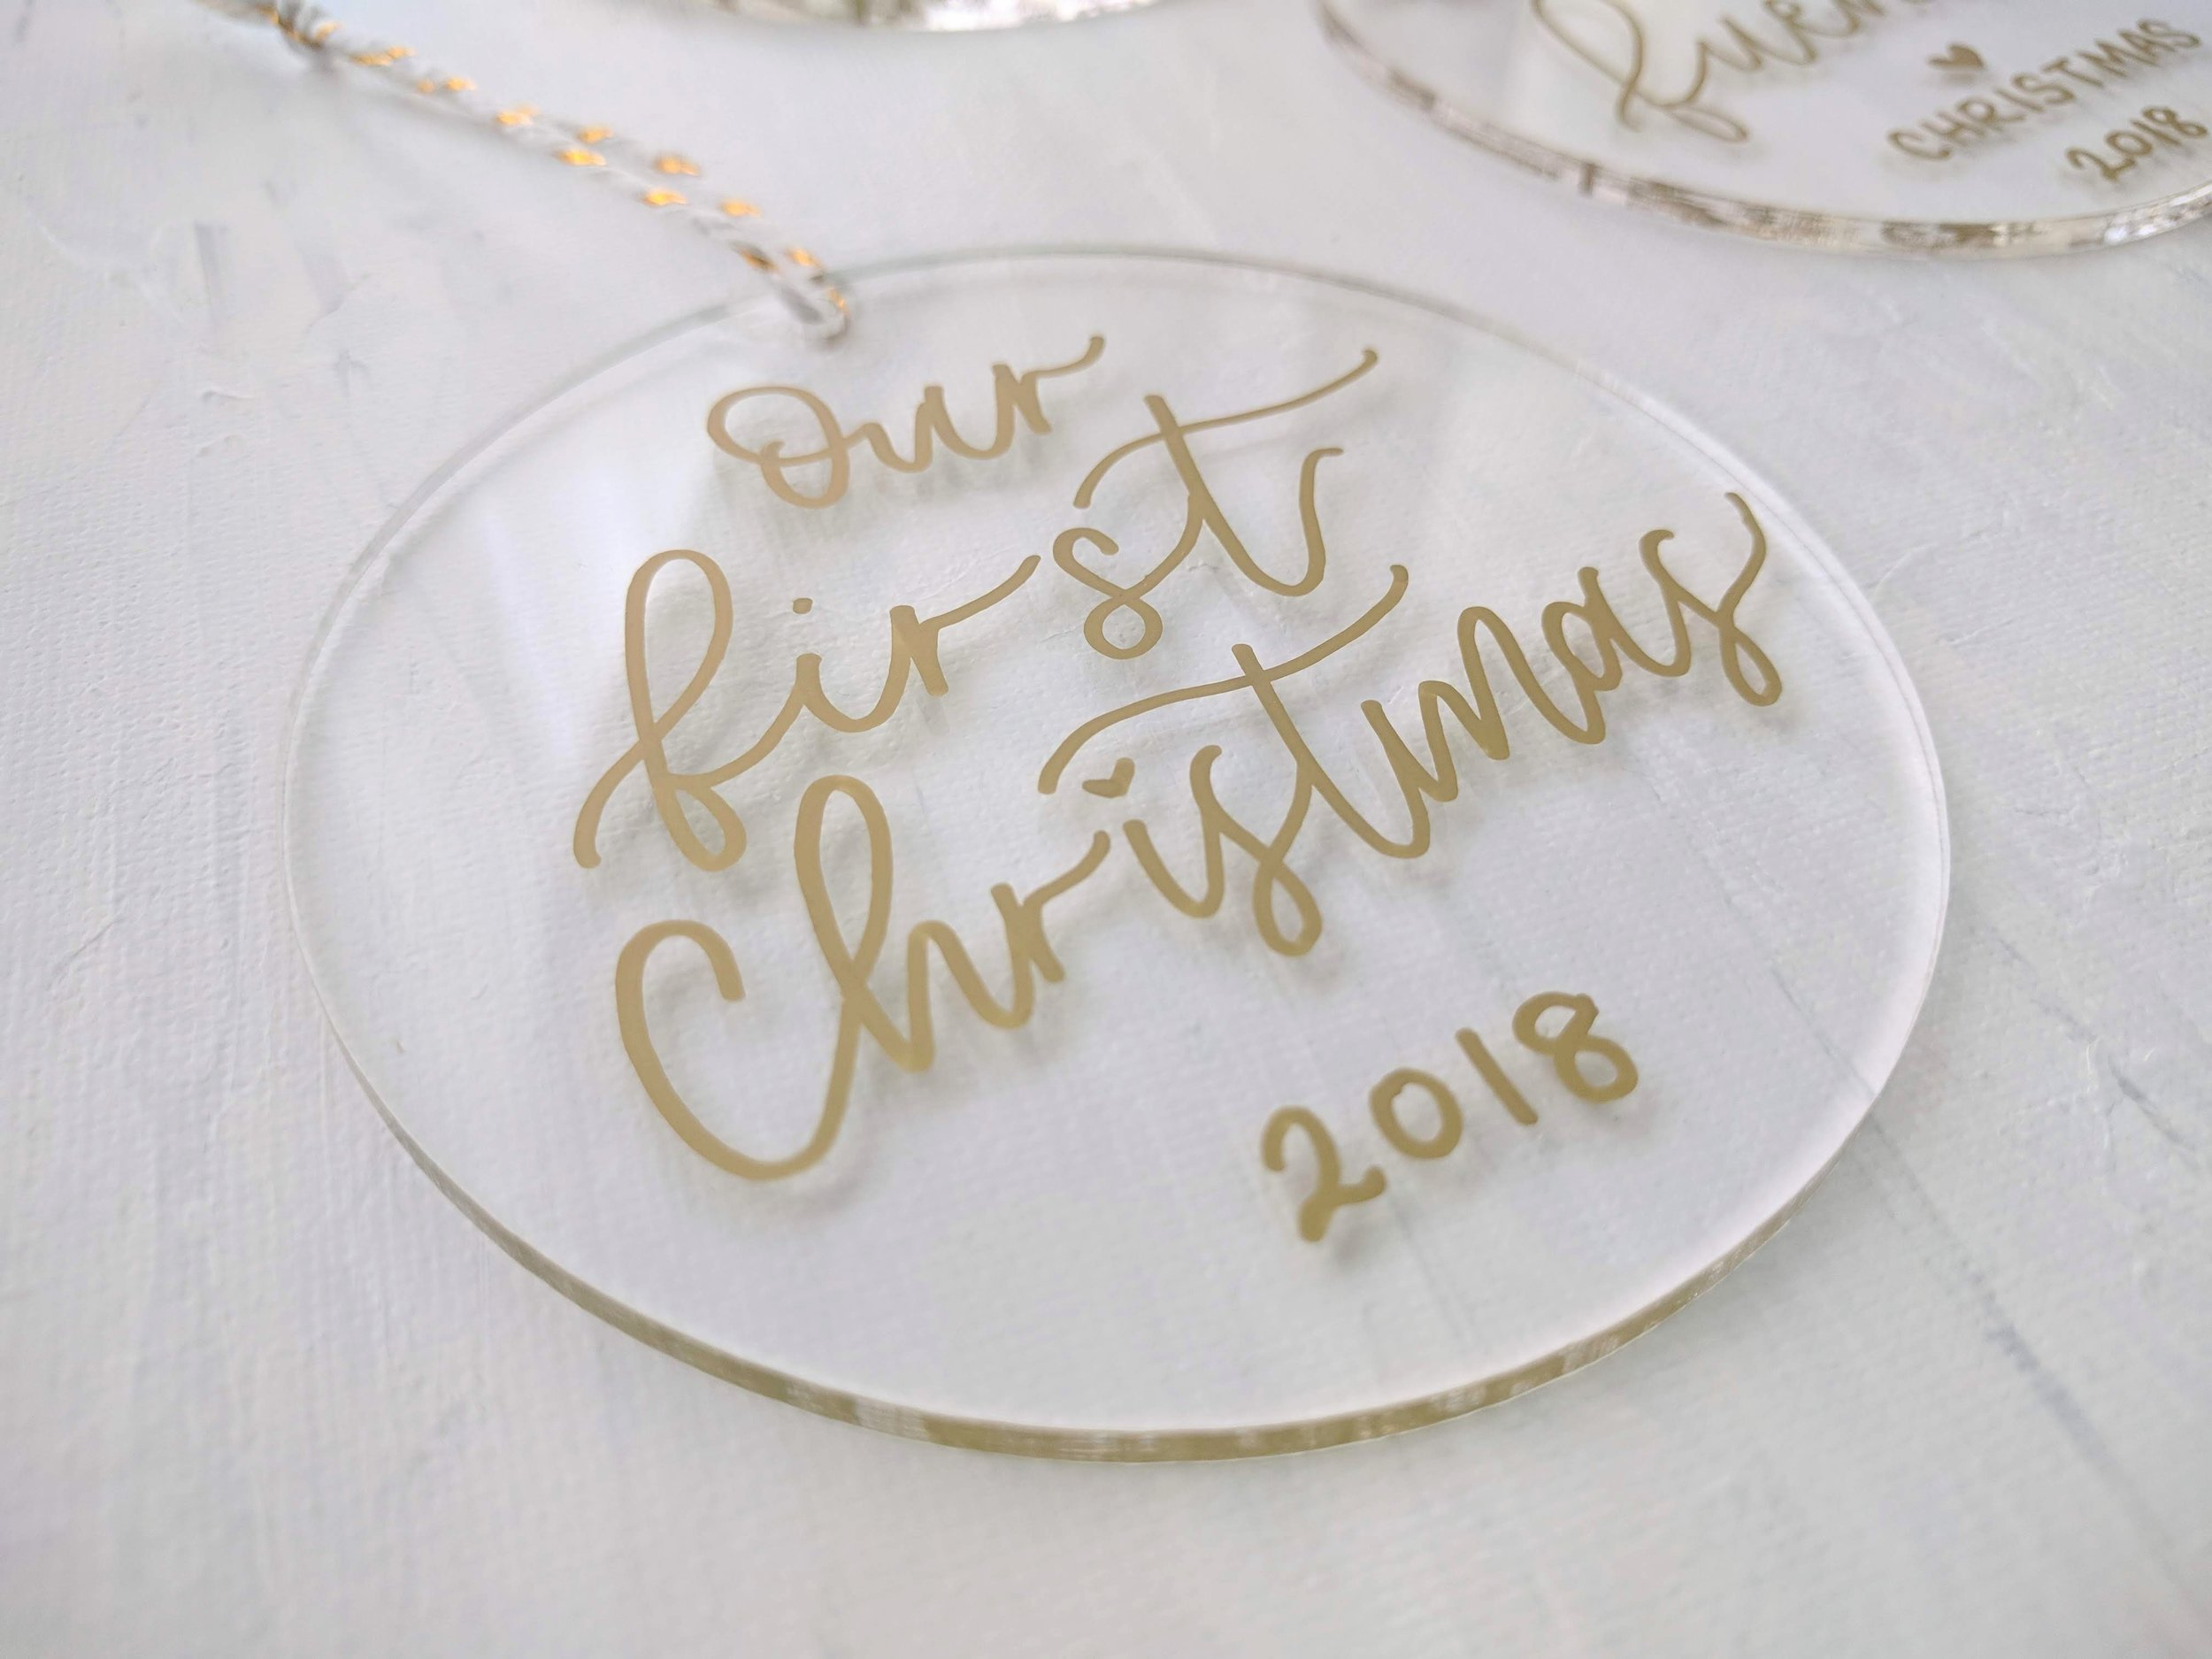 acrylic-calligraphy-ornament-4.jpg